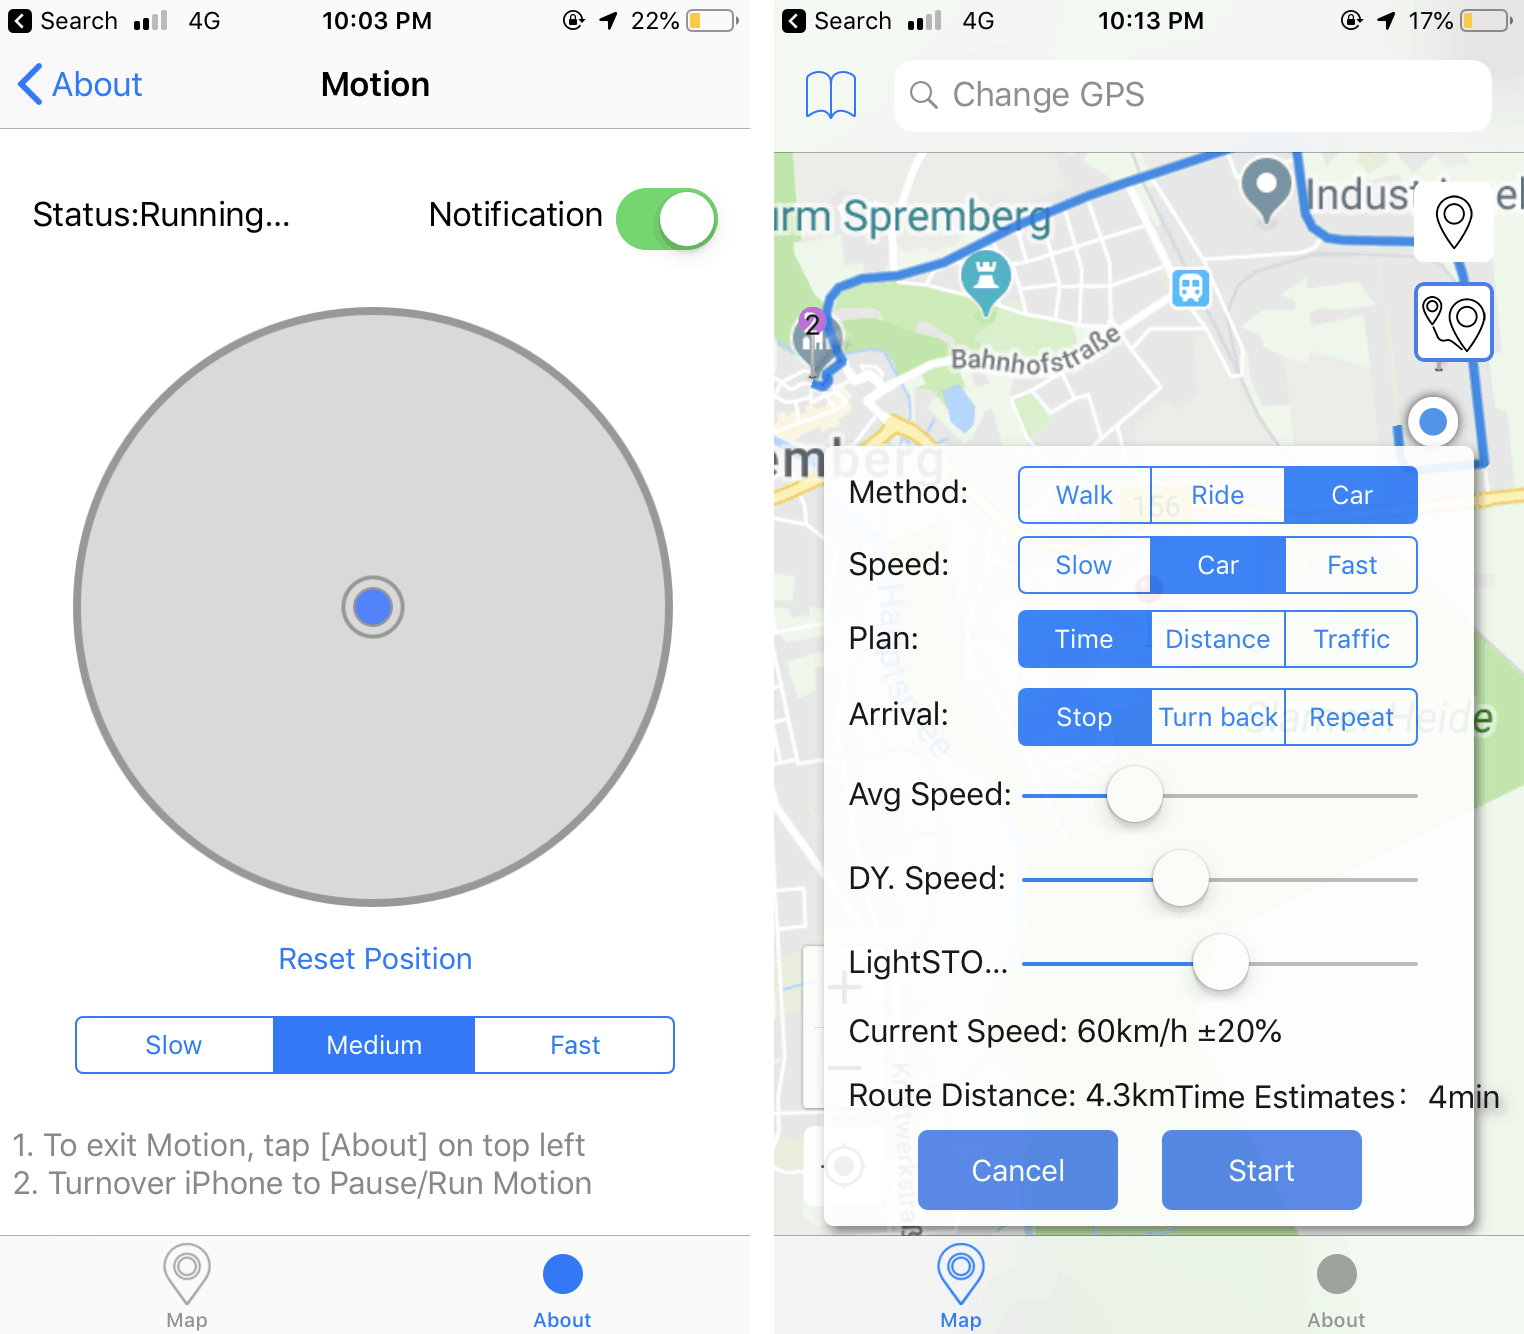 Change GPS location and move around in iPhone